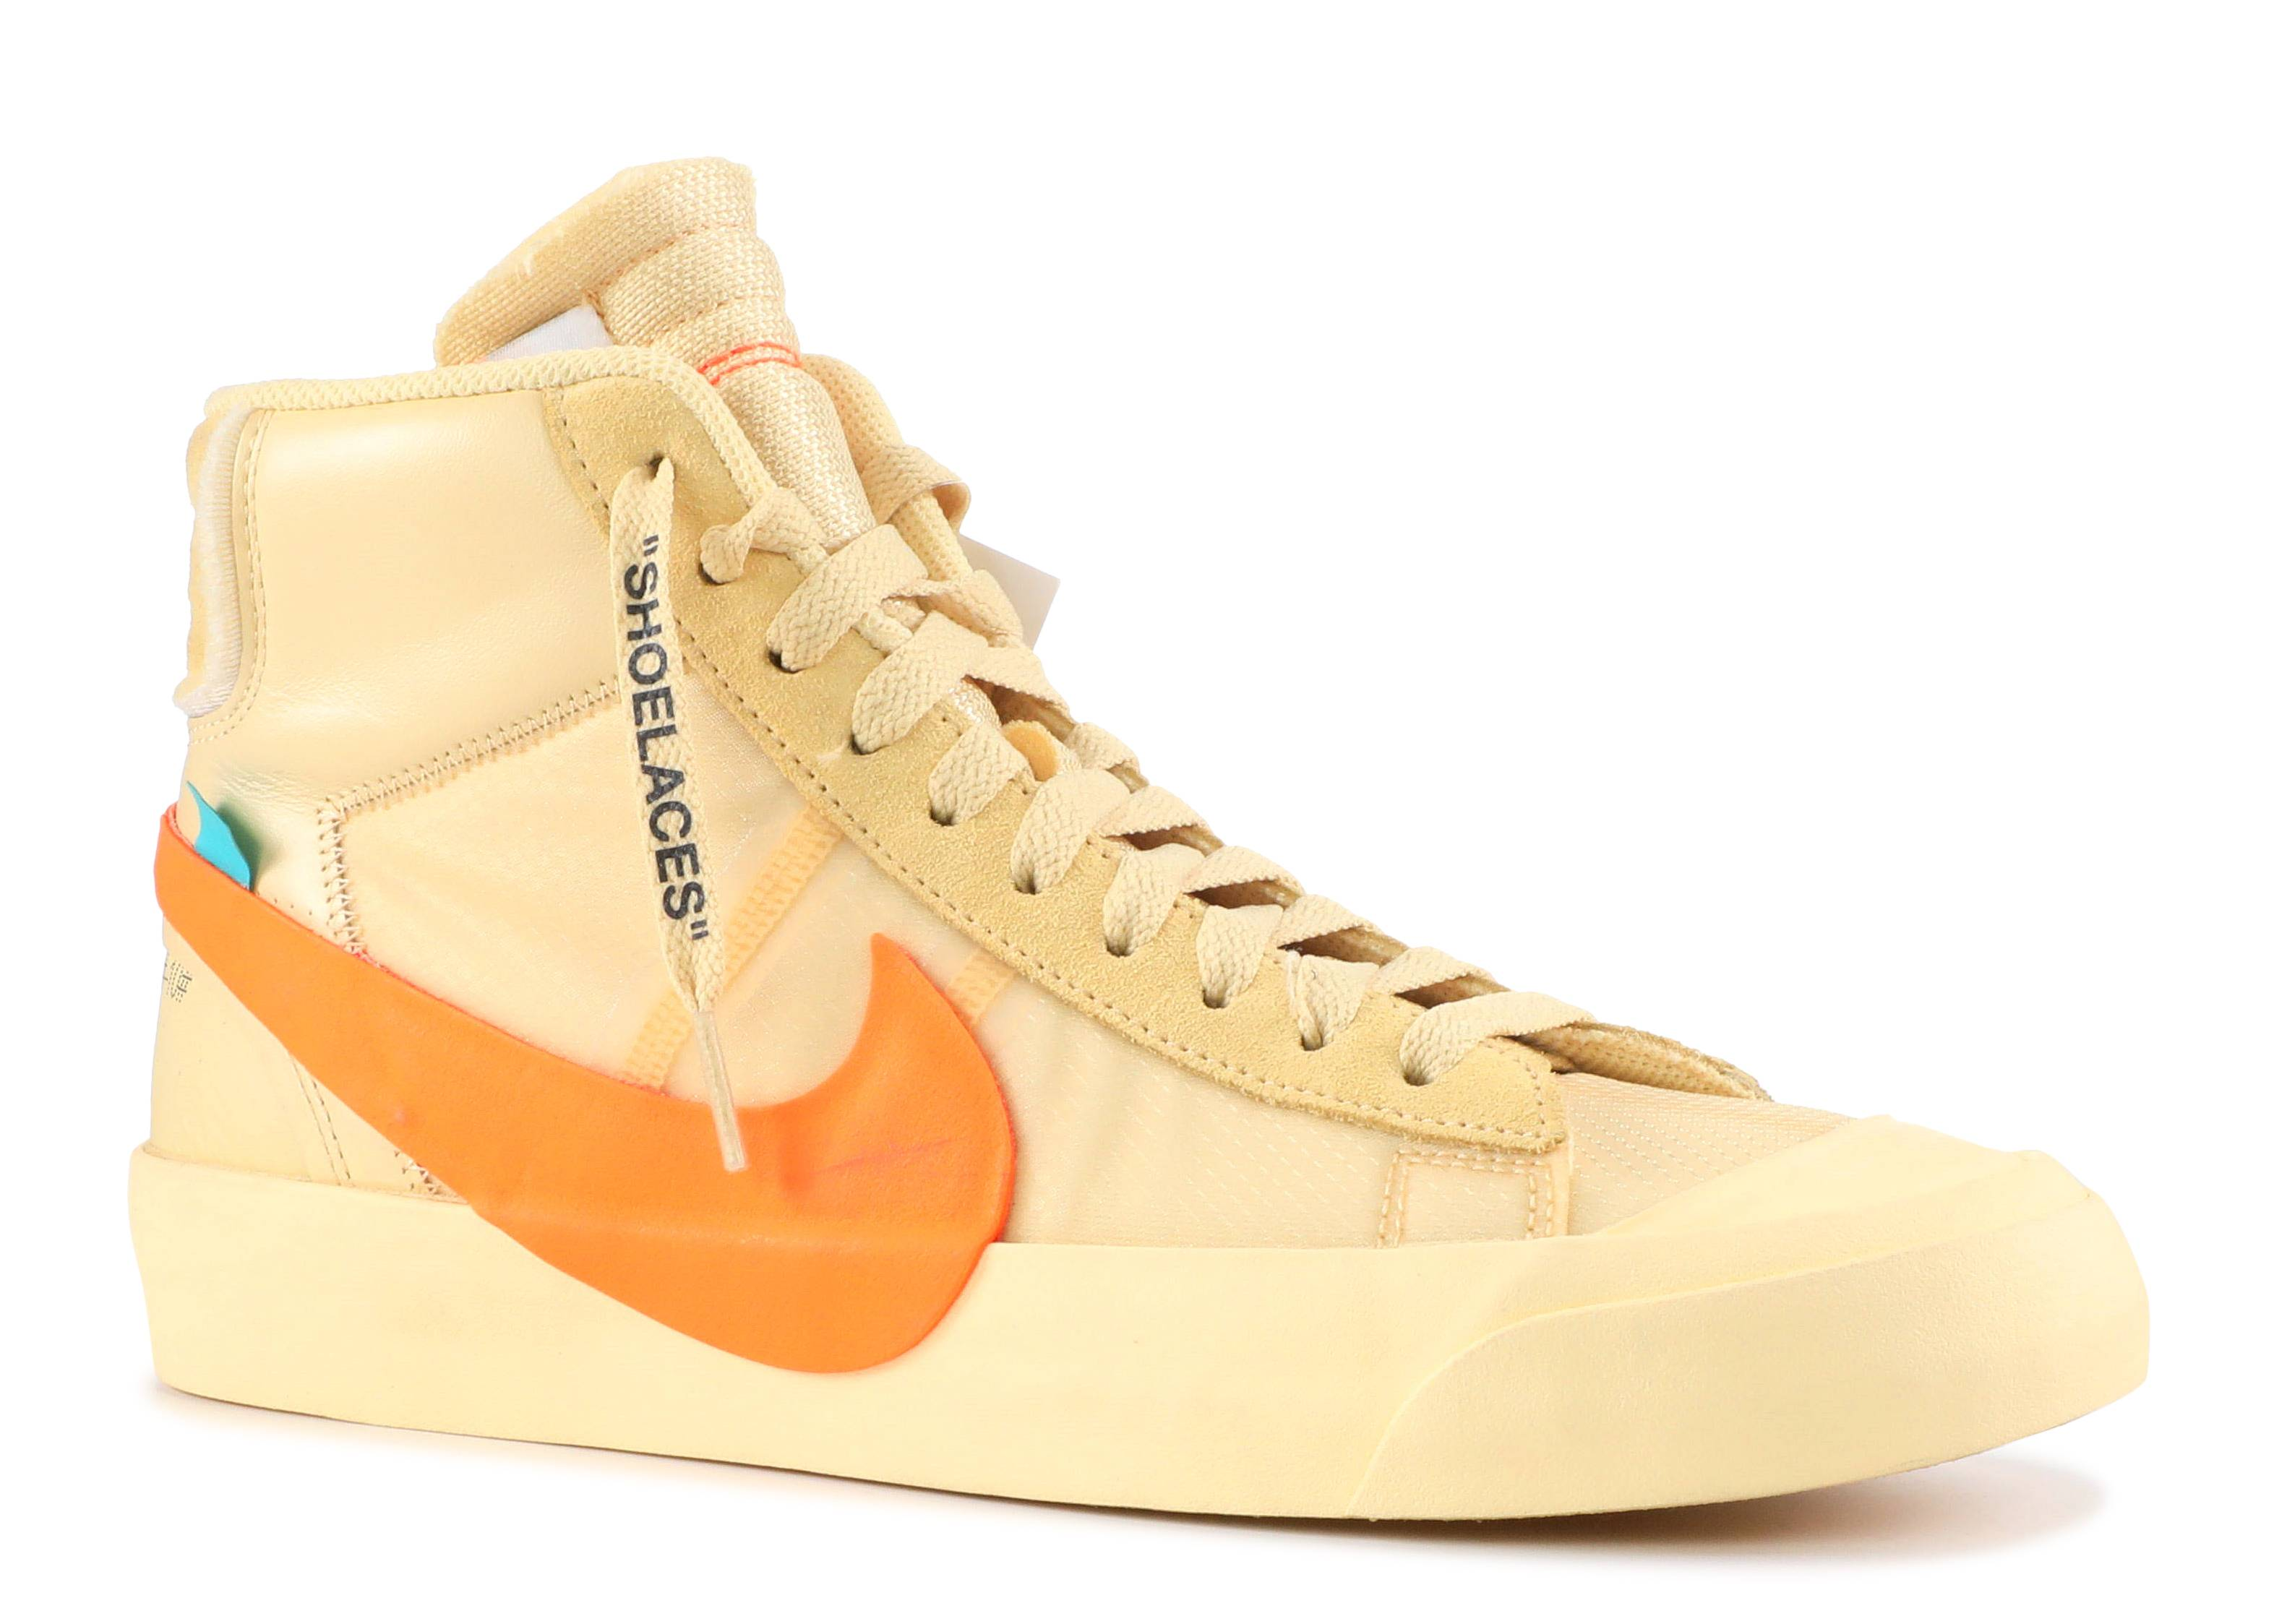 5d3573652d6b The 10  Nike Blazer Mid